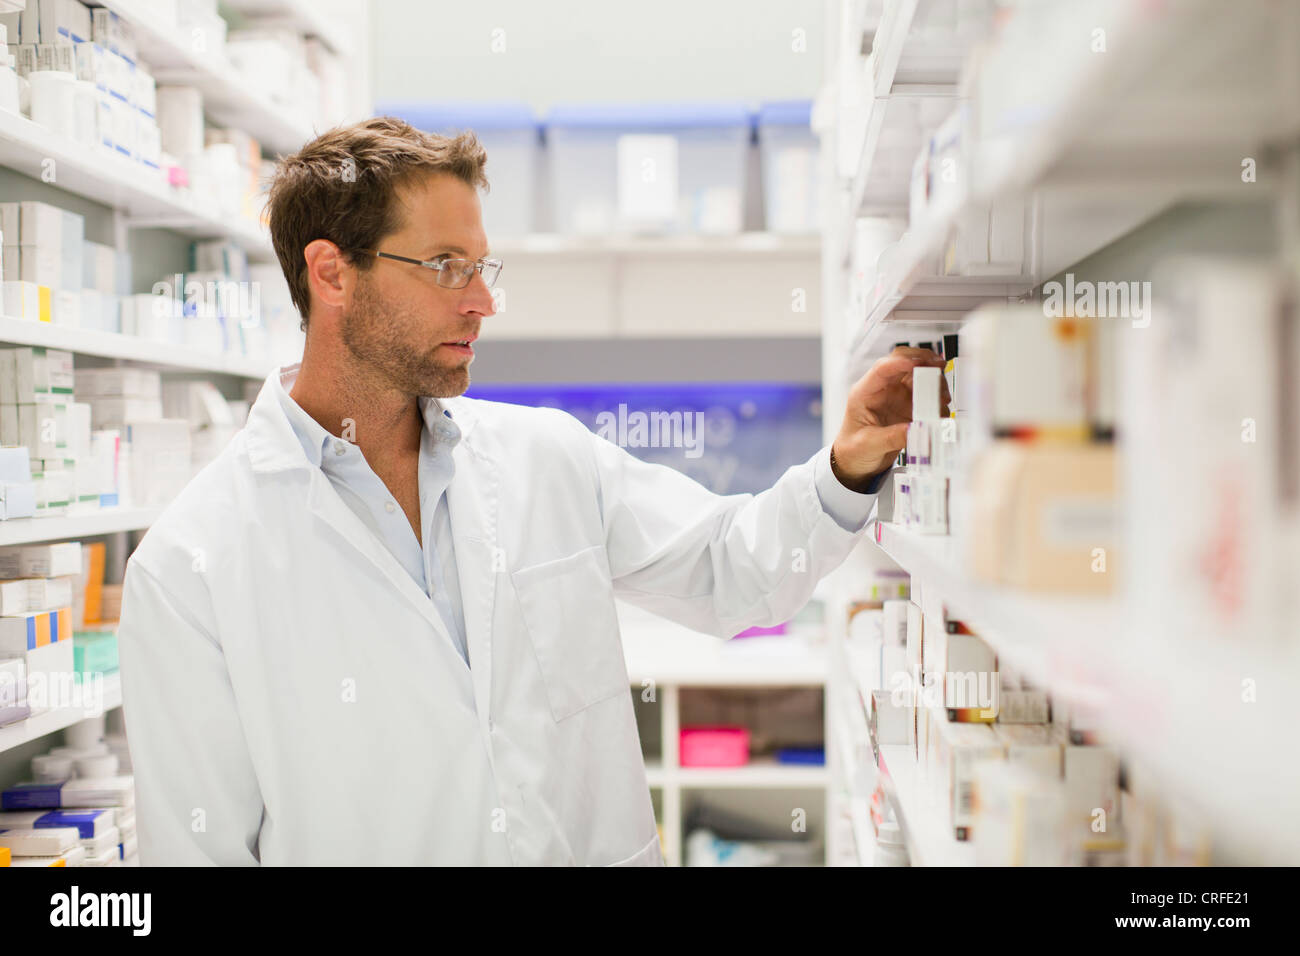 Pharmacist browsing medicines on shelf - Stock Image